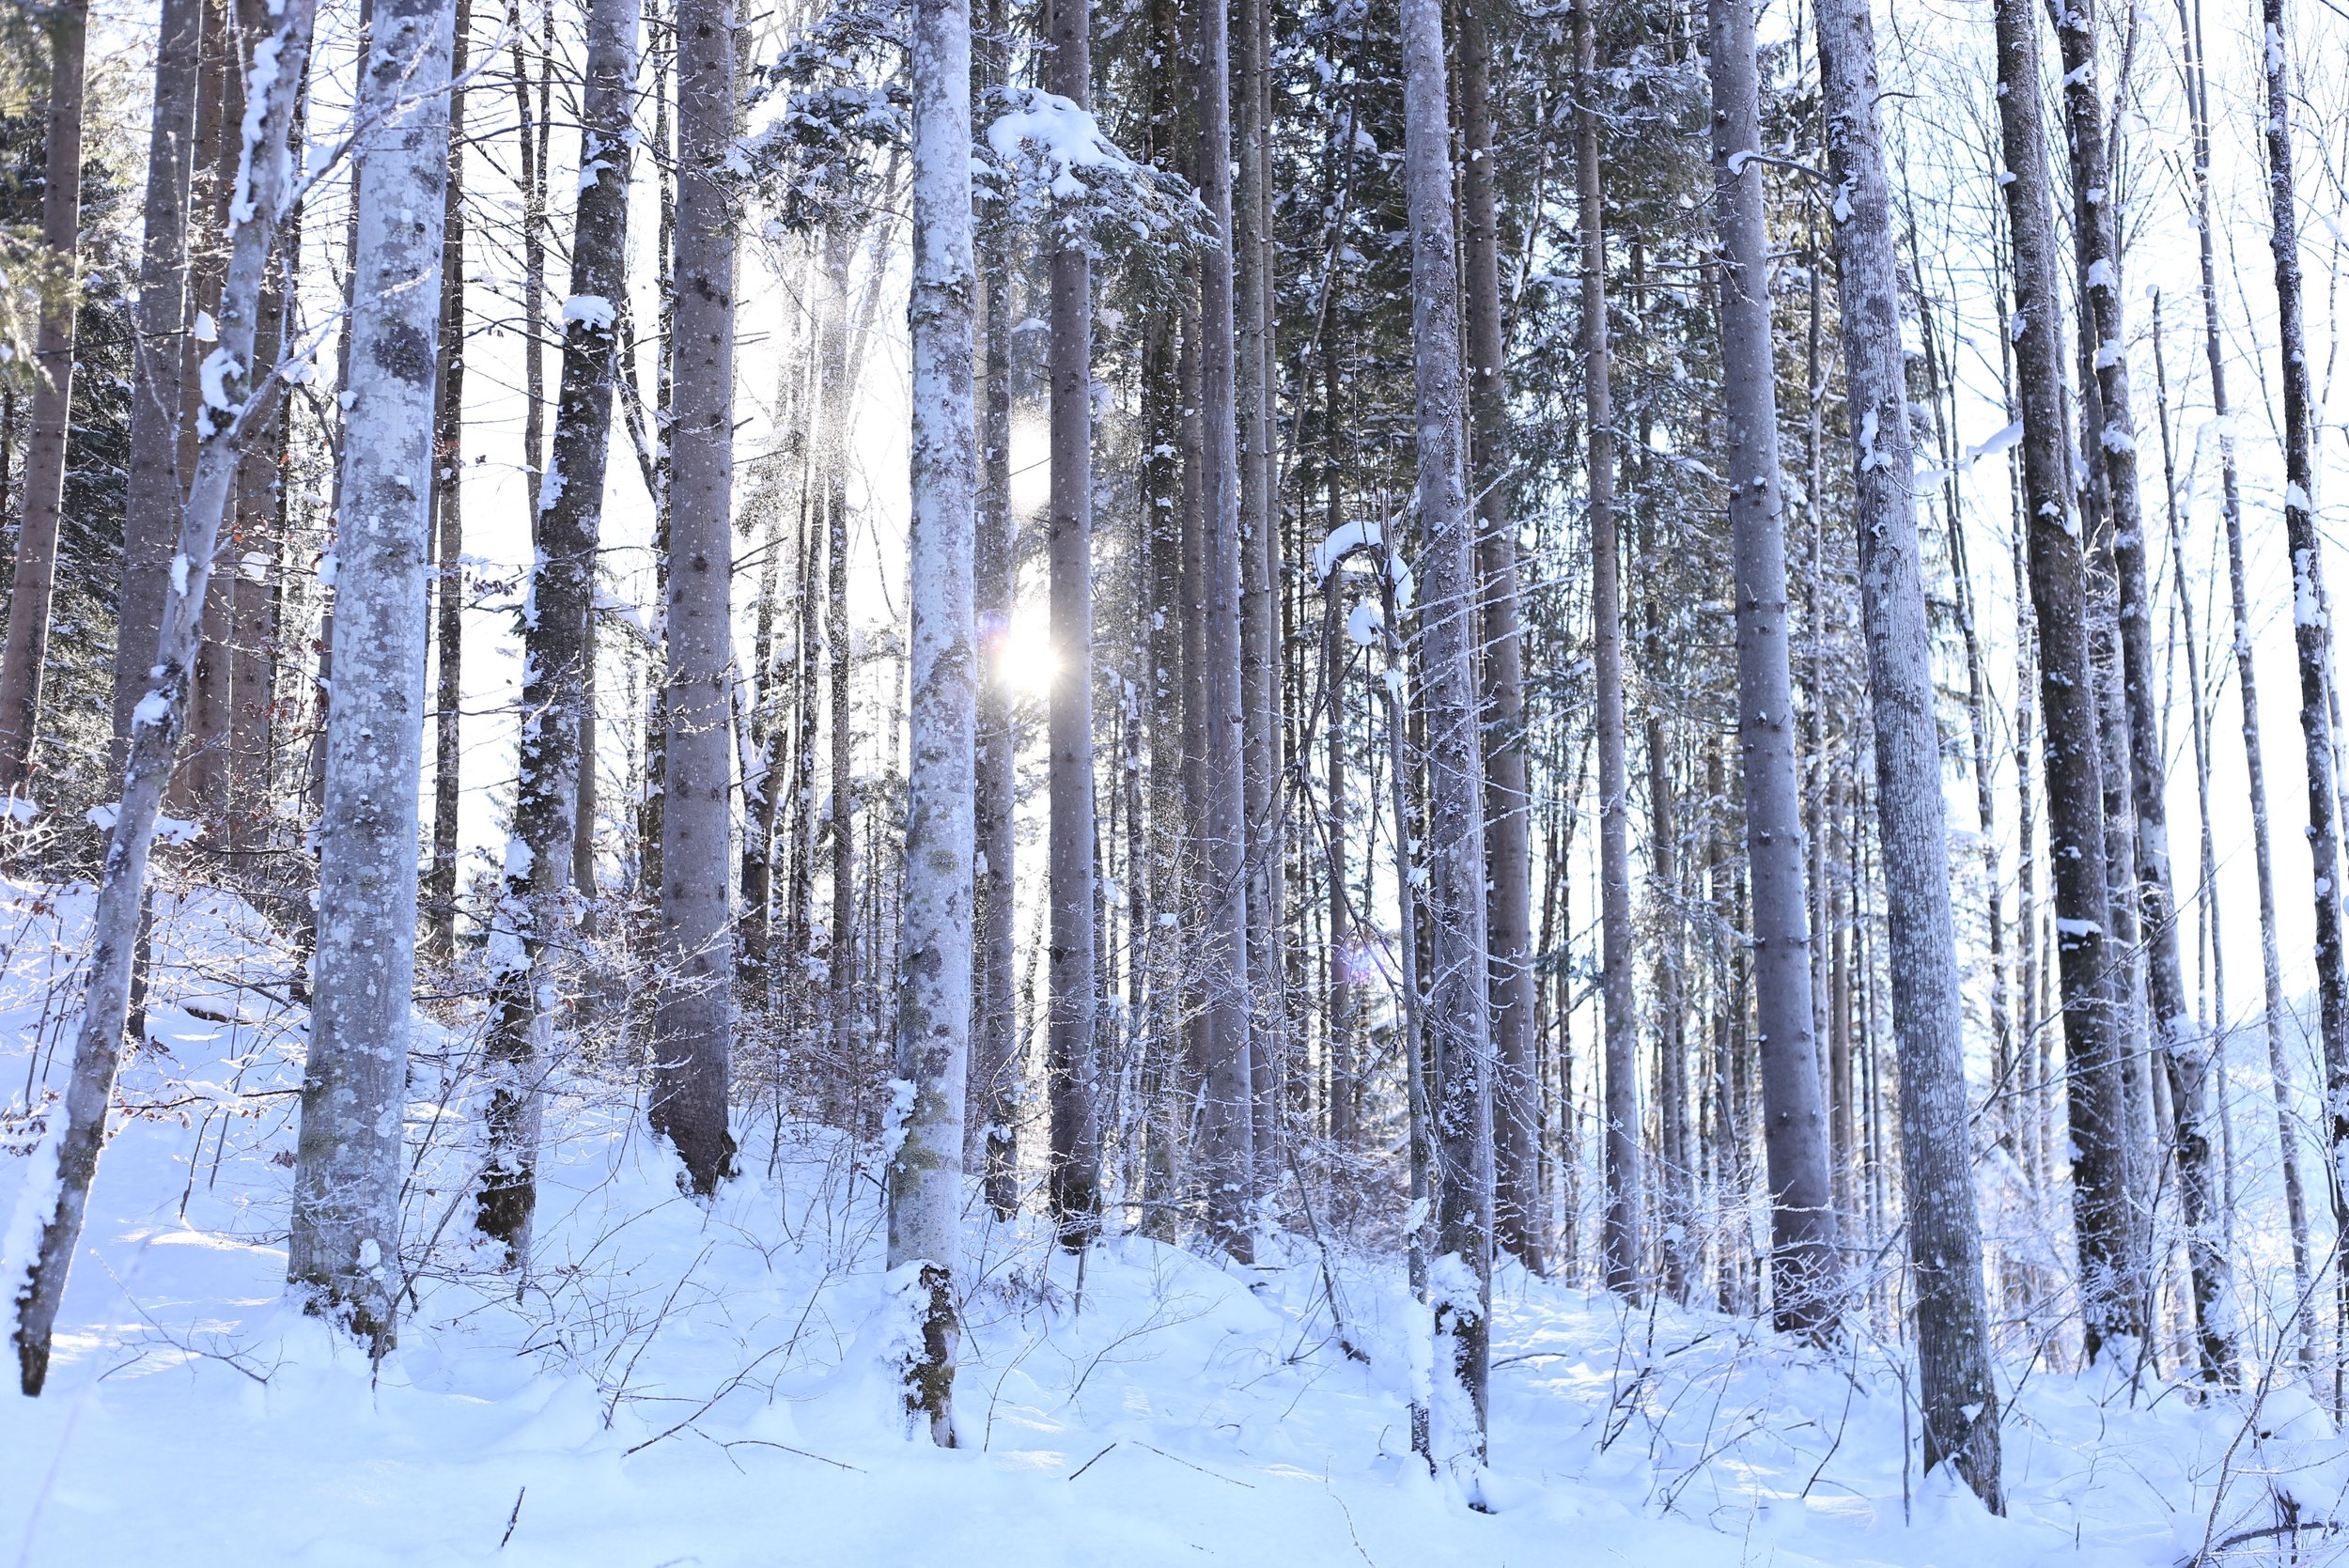 An enchanted forest in winter - with sunlight filtering through the trees.